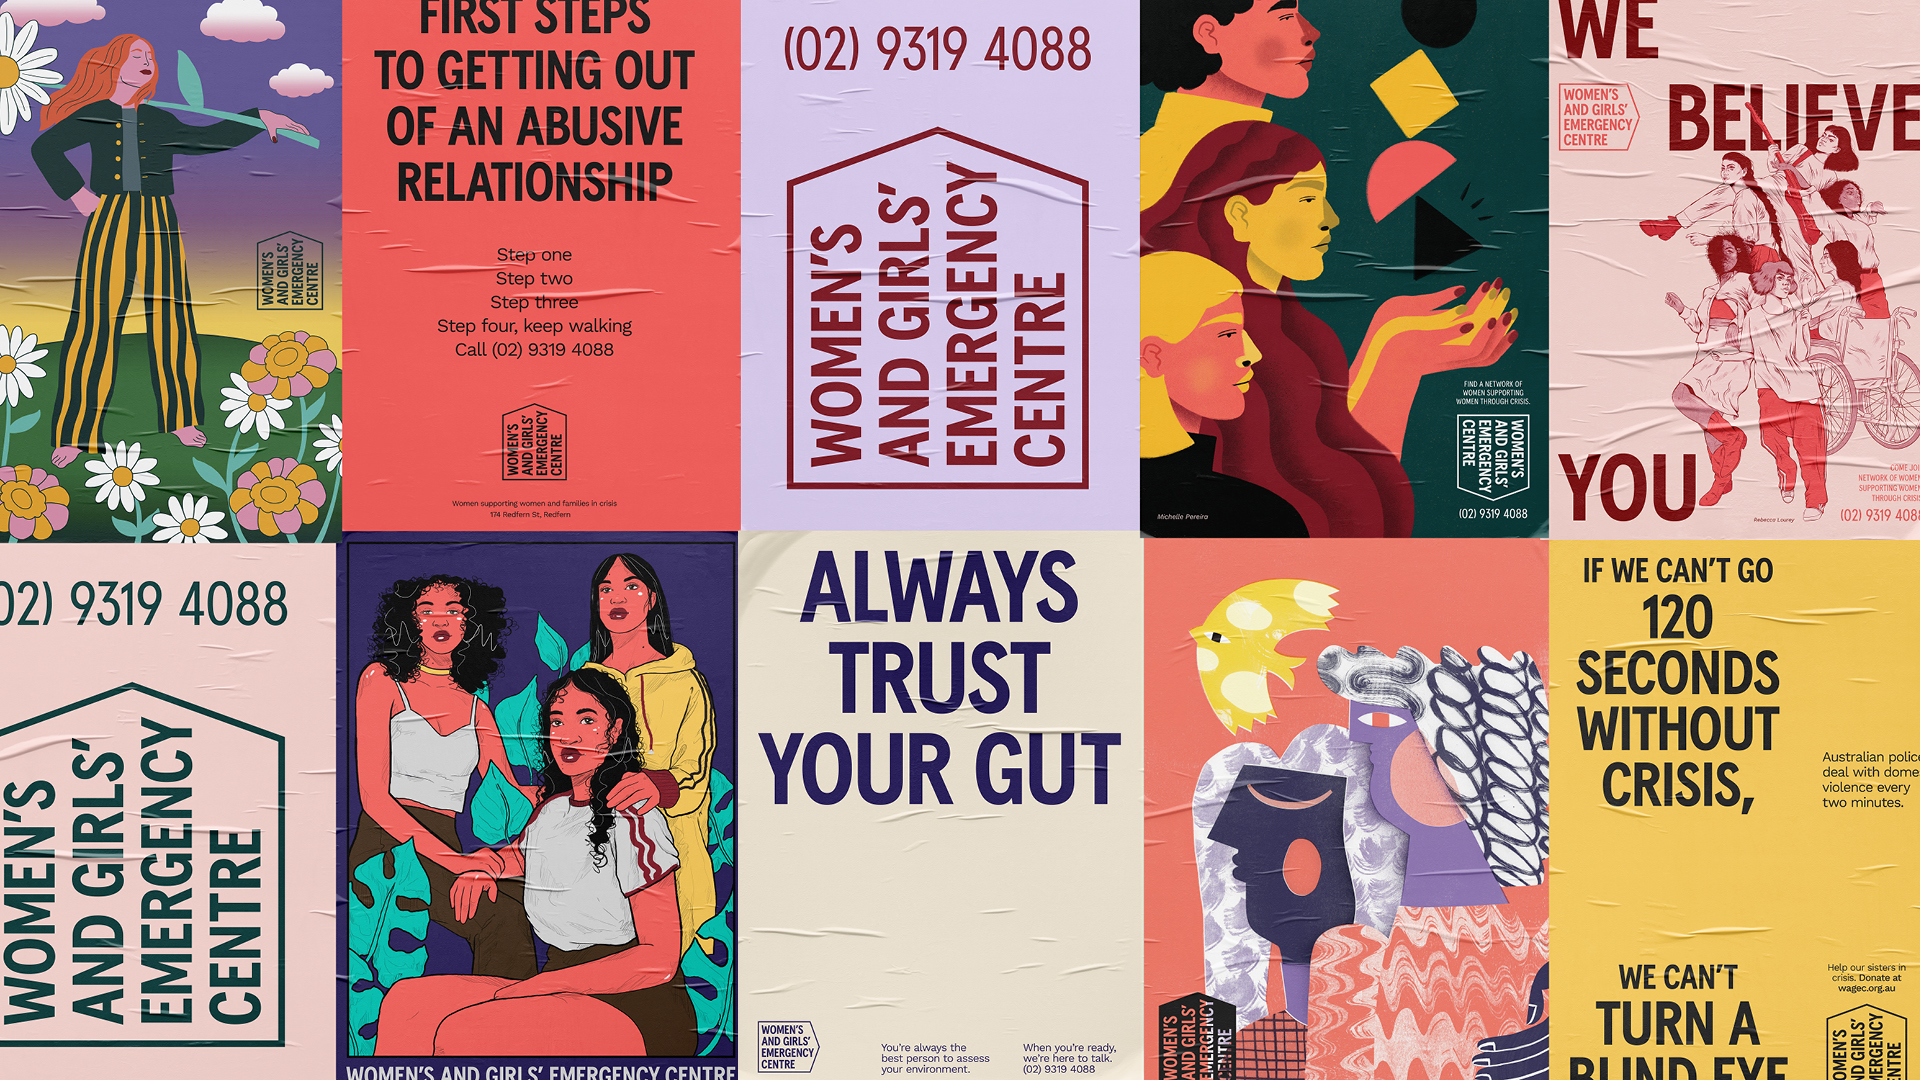 Women's and Girl's Emergency Centre launches new exhibition + brand identity via For The People